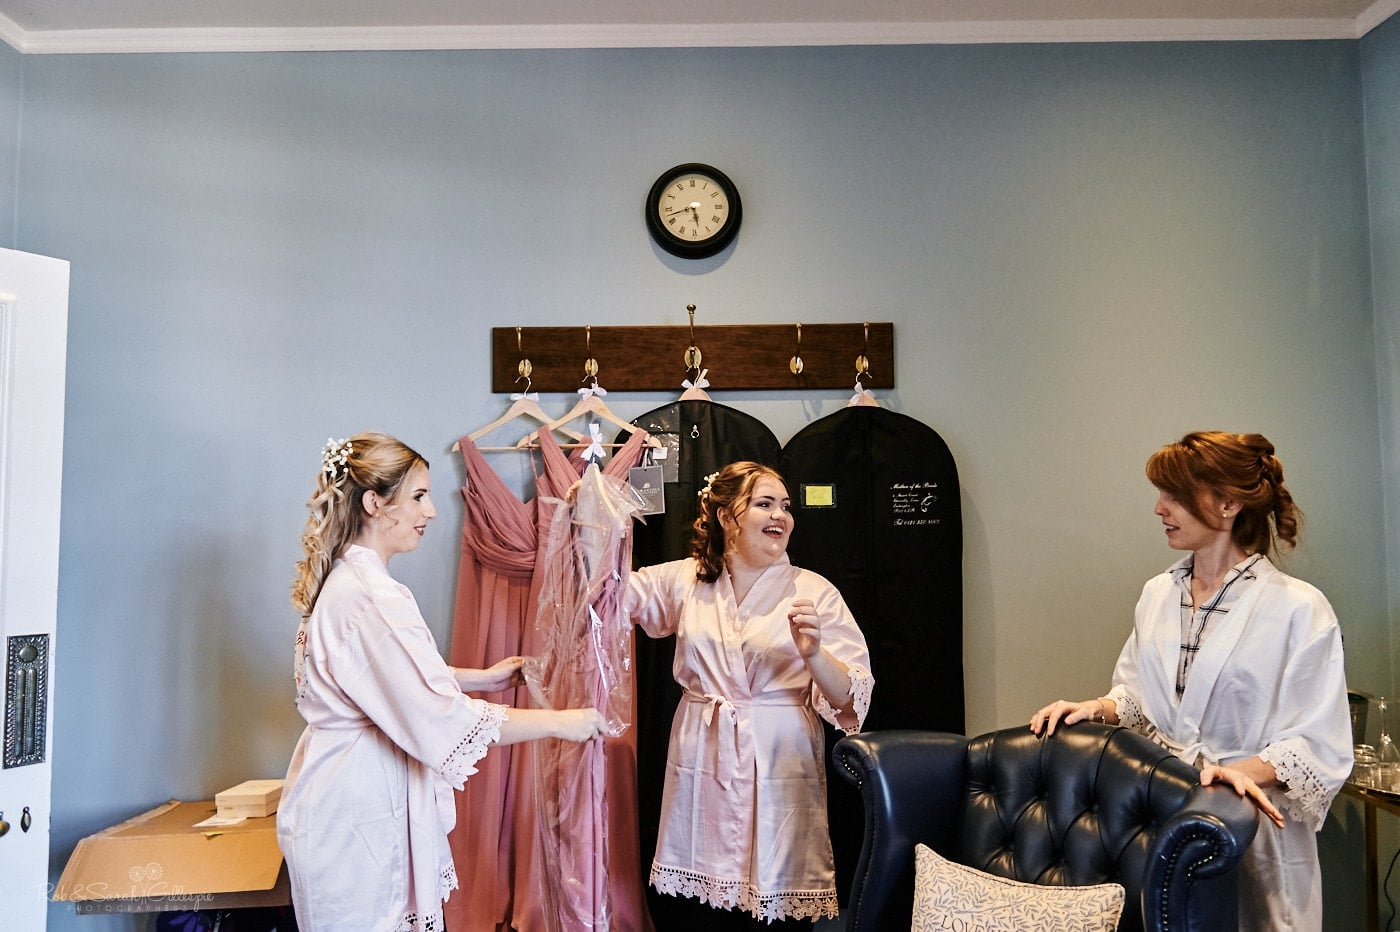 Bride and bridemaids prepare for wedding in Love Is Enough room at Pendrell Hall